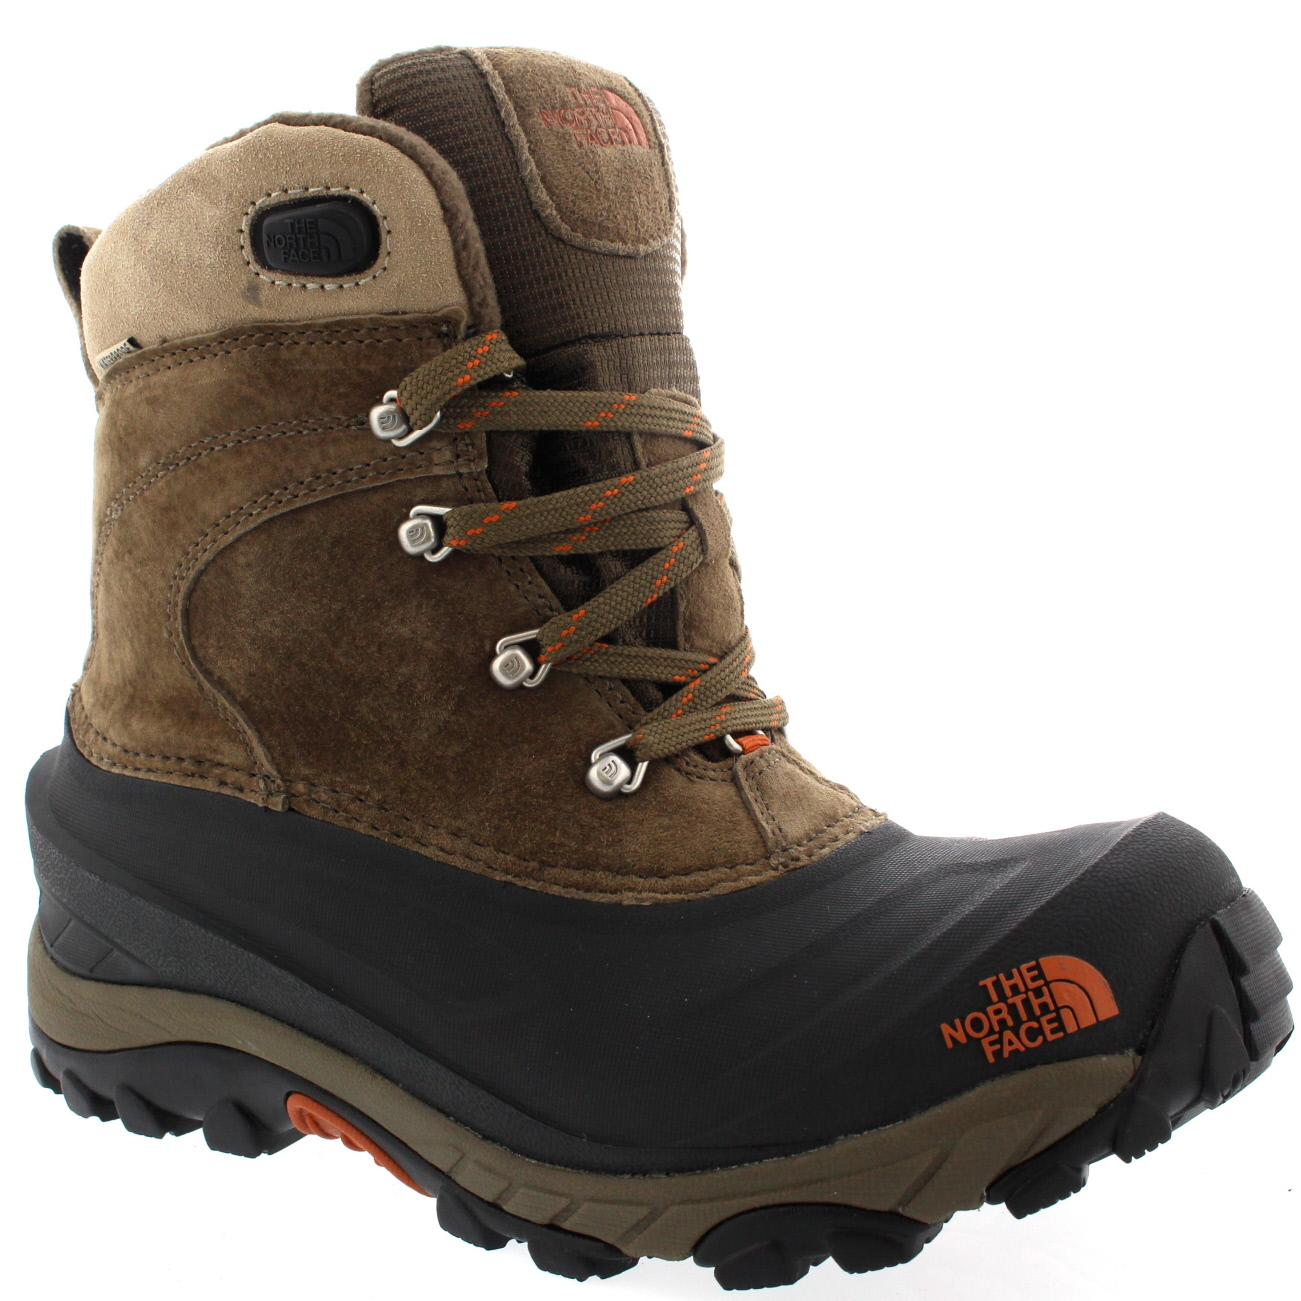 Mens The North Face Chilkat II Lace Up Winter Snow Hiking